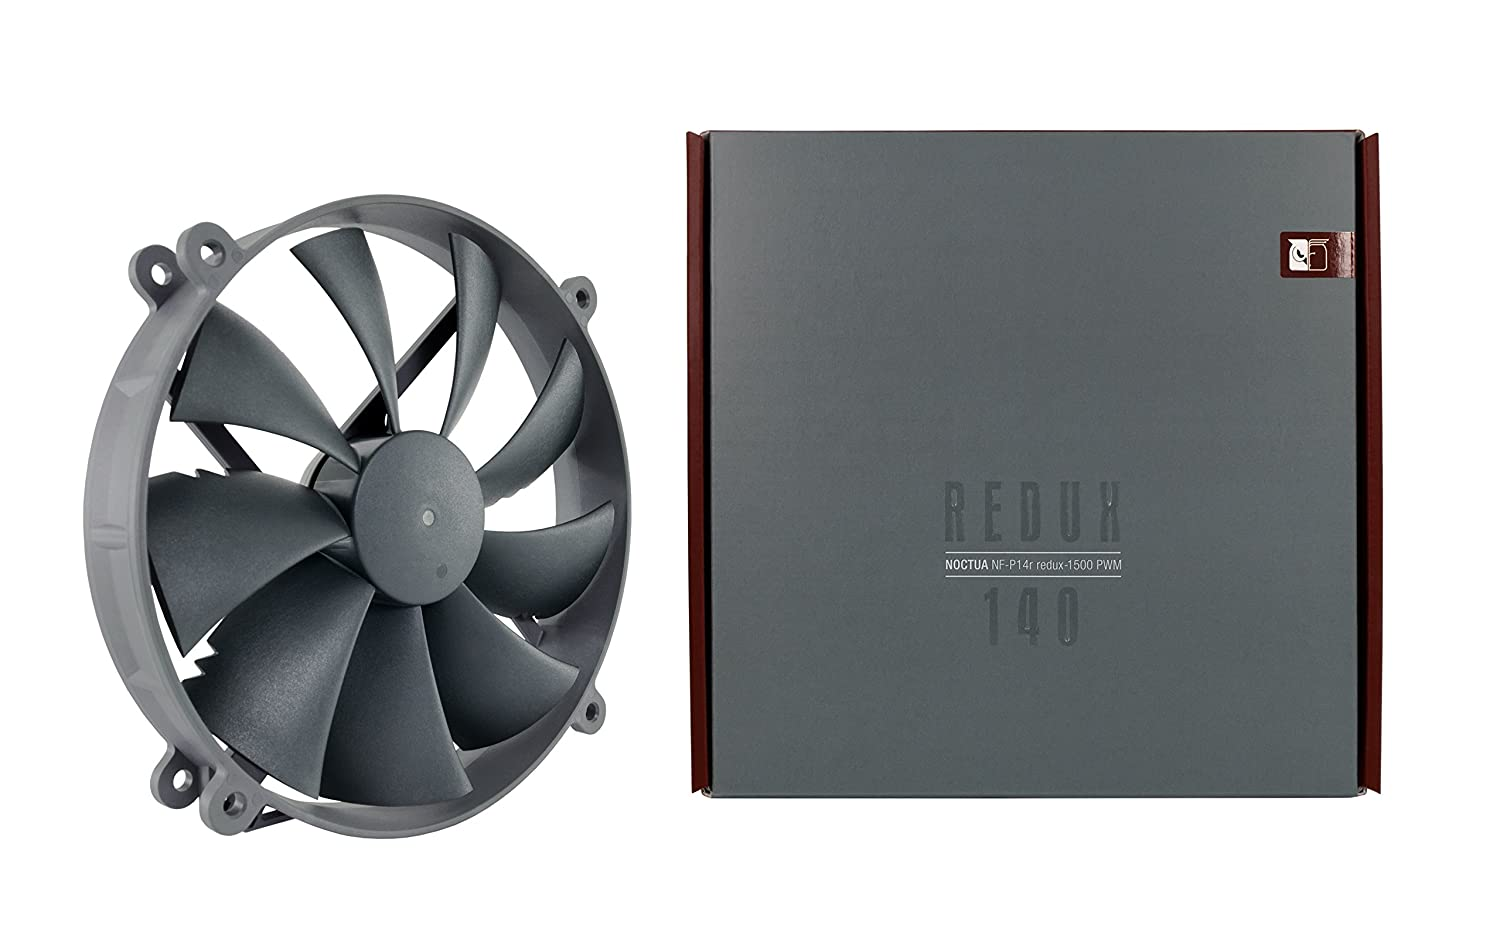 Noctua NF-P14r redux-1500 PWM 4-Pin High Performance Cooling Fan with 1500RPM 140mm, round, Grey